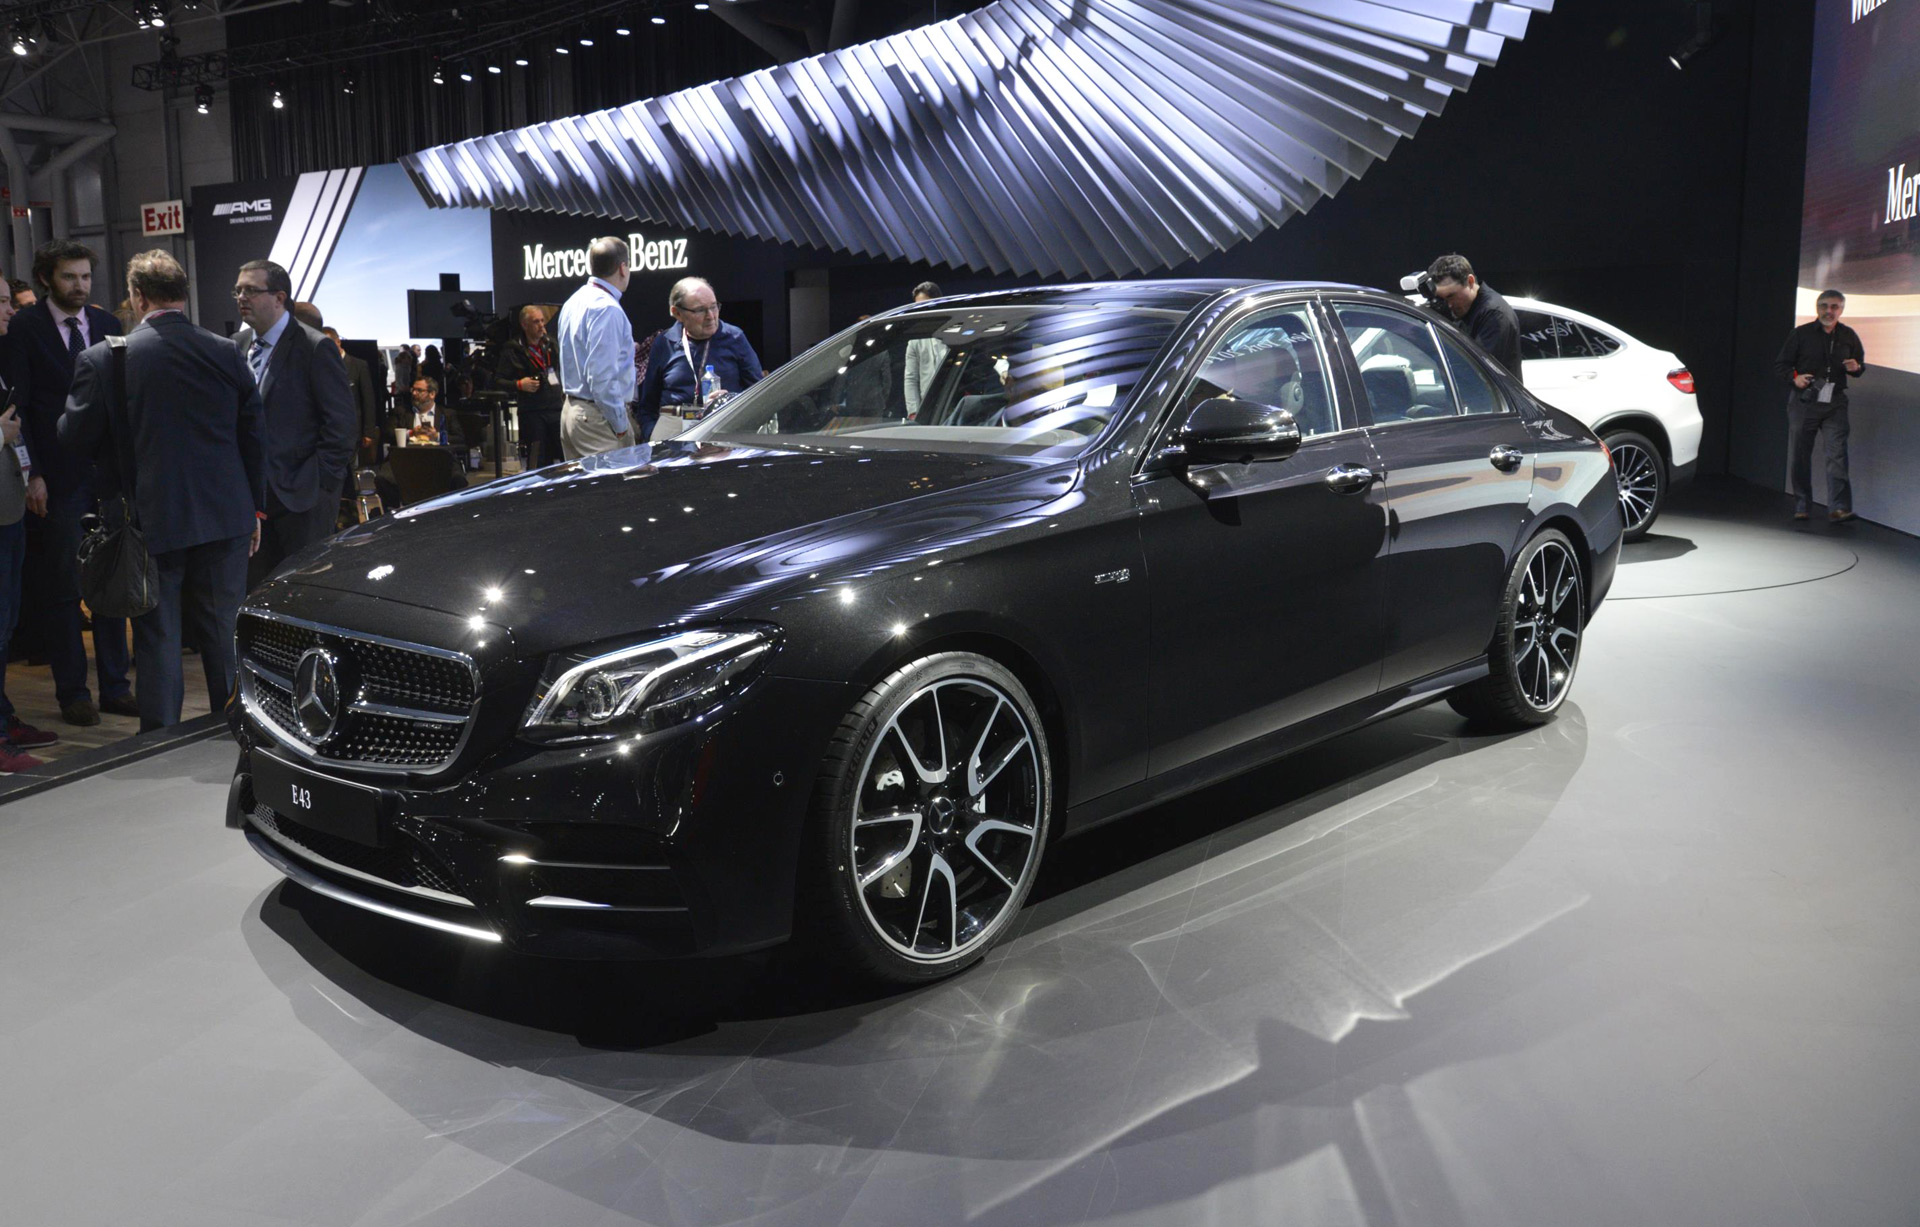 2017 mercedes amg e43 revealed at new york auto show live - Mercedes car show ...